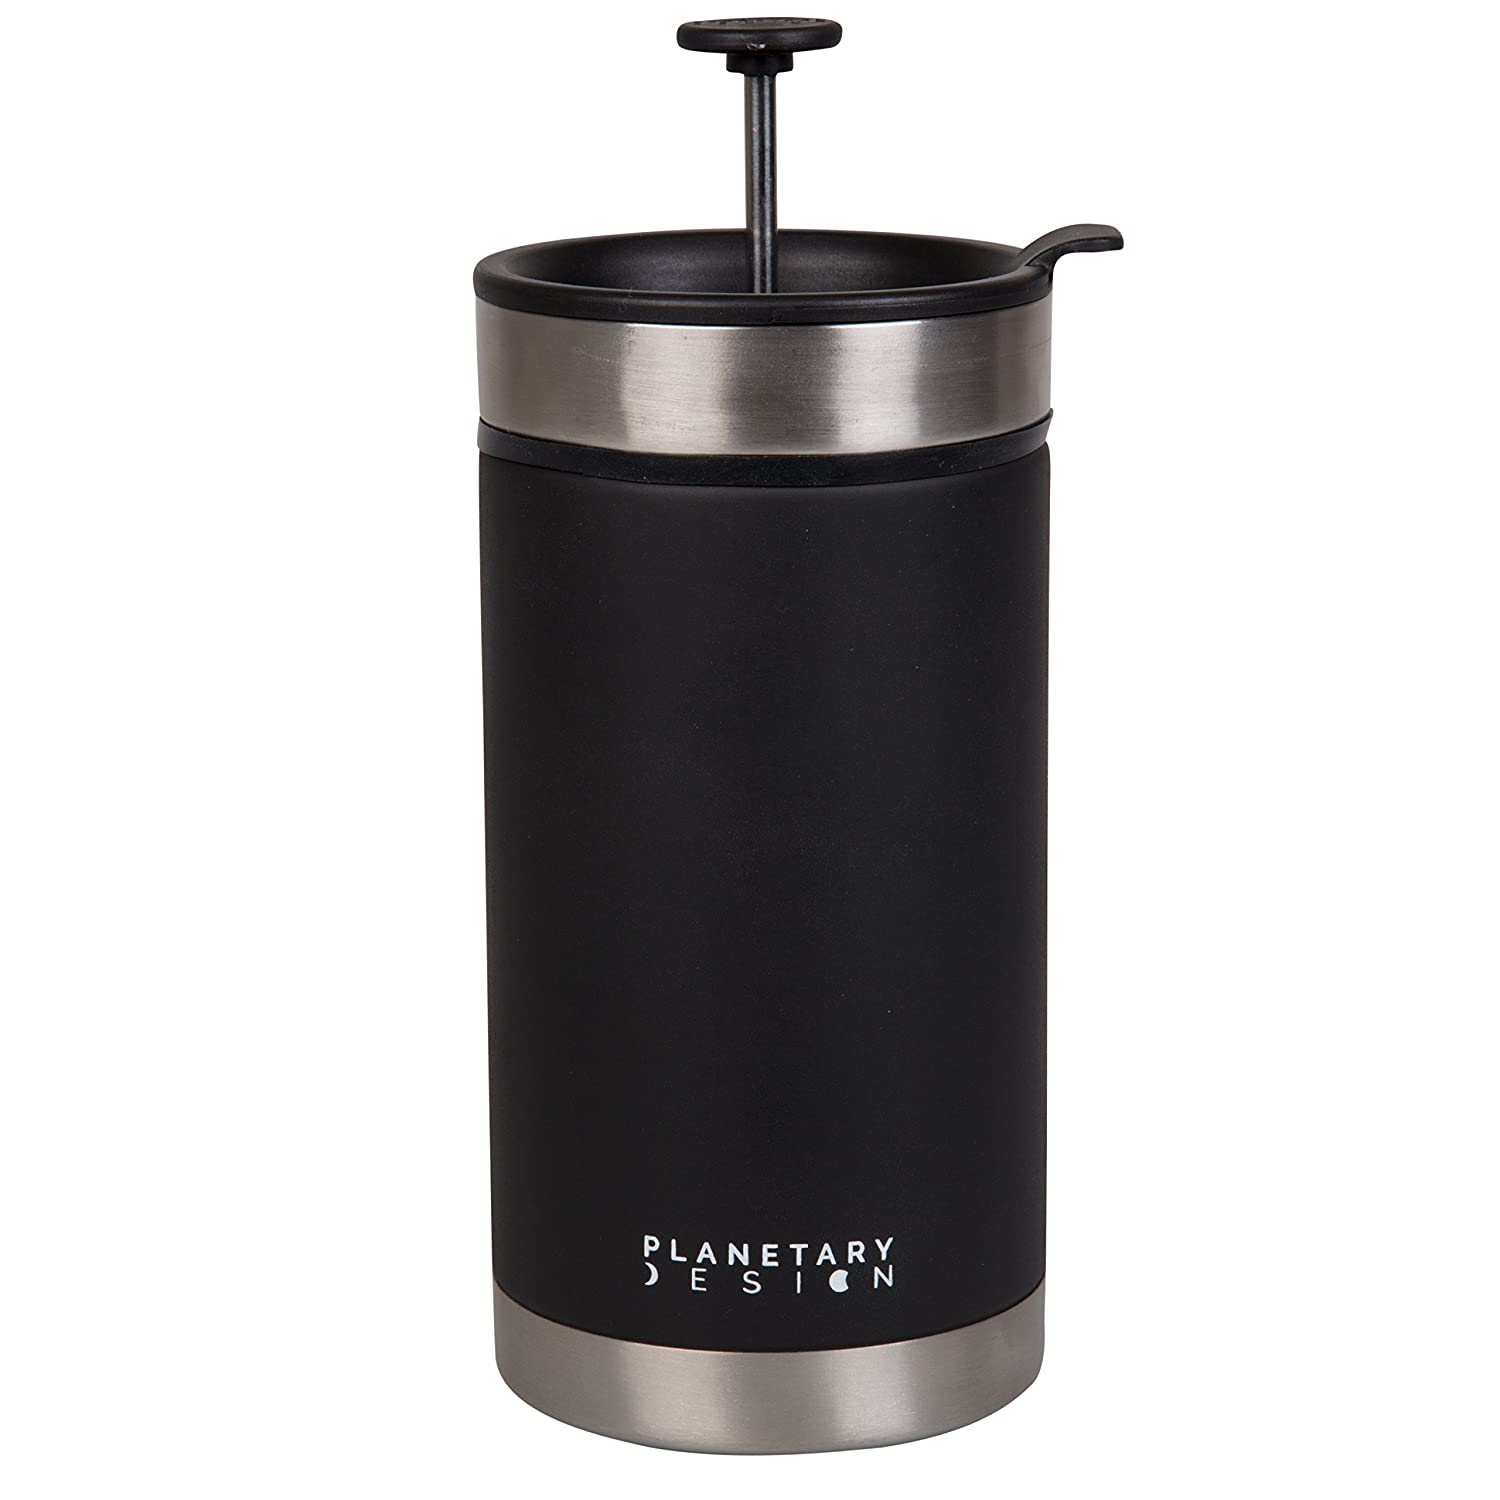 Steel Toe French Press Coffee Travel Mug with Brü-Stop Technology - 20 oz - Stainless Steel - Brushed Steel Planetary Design